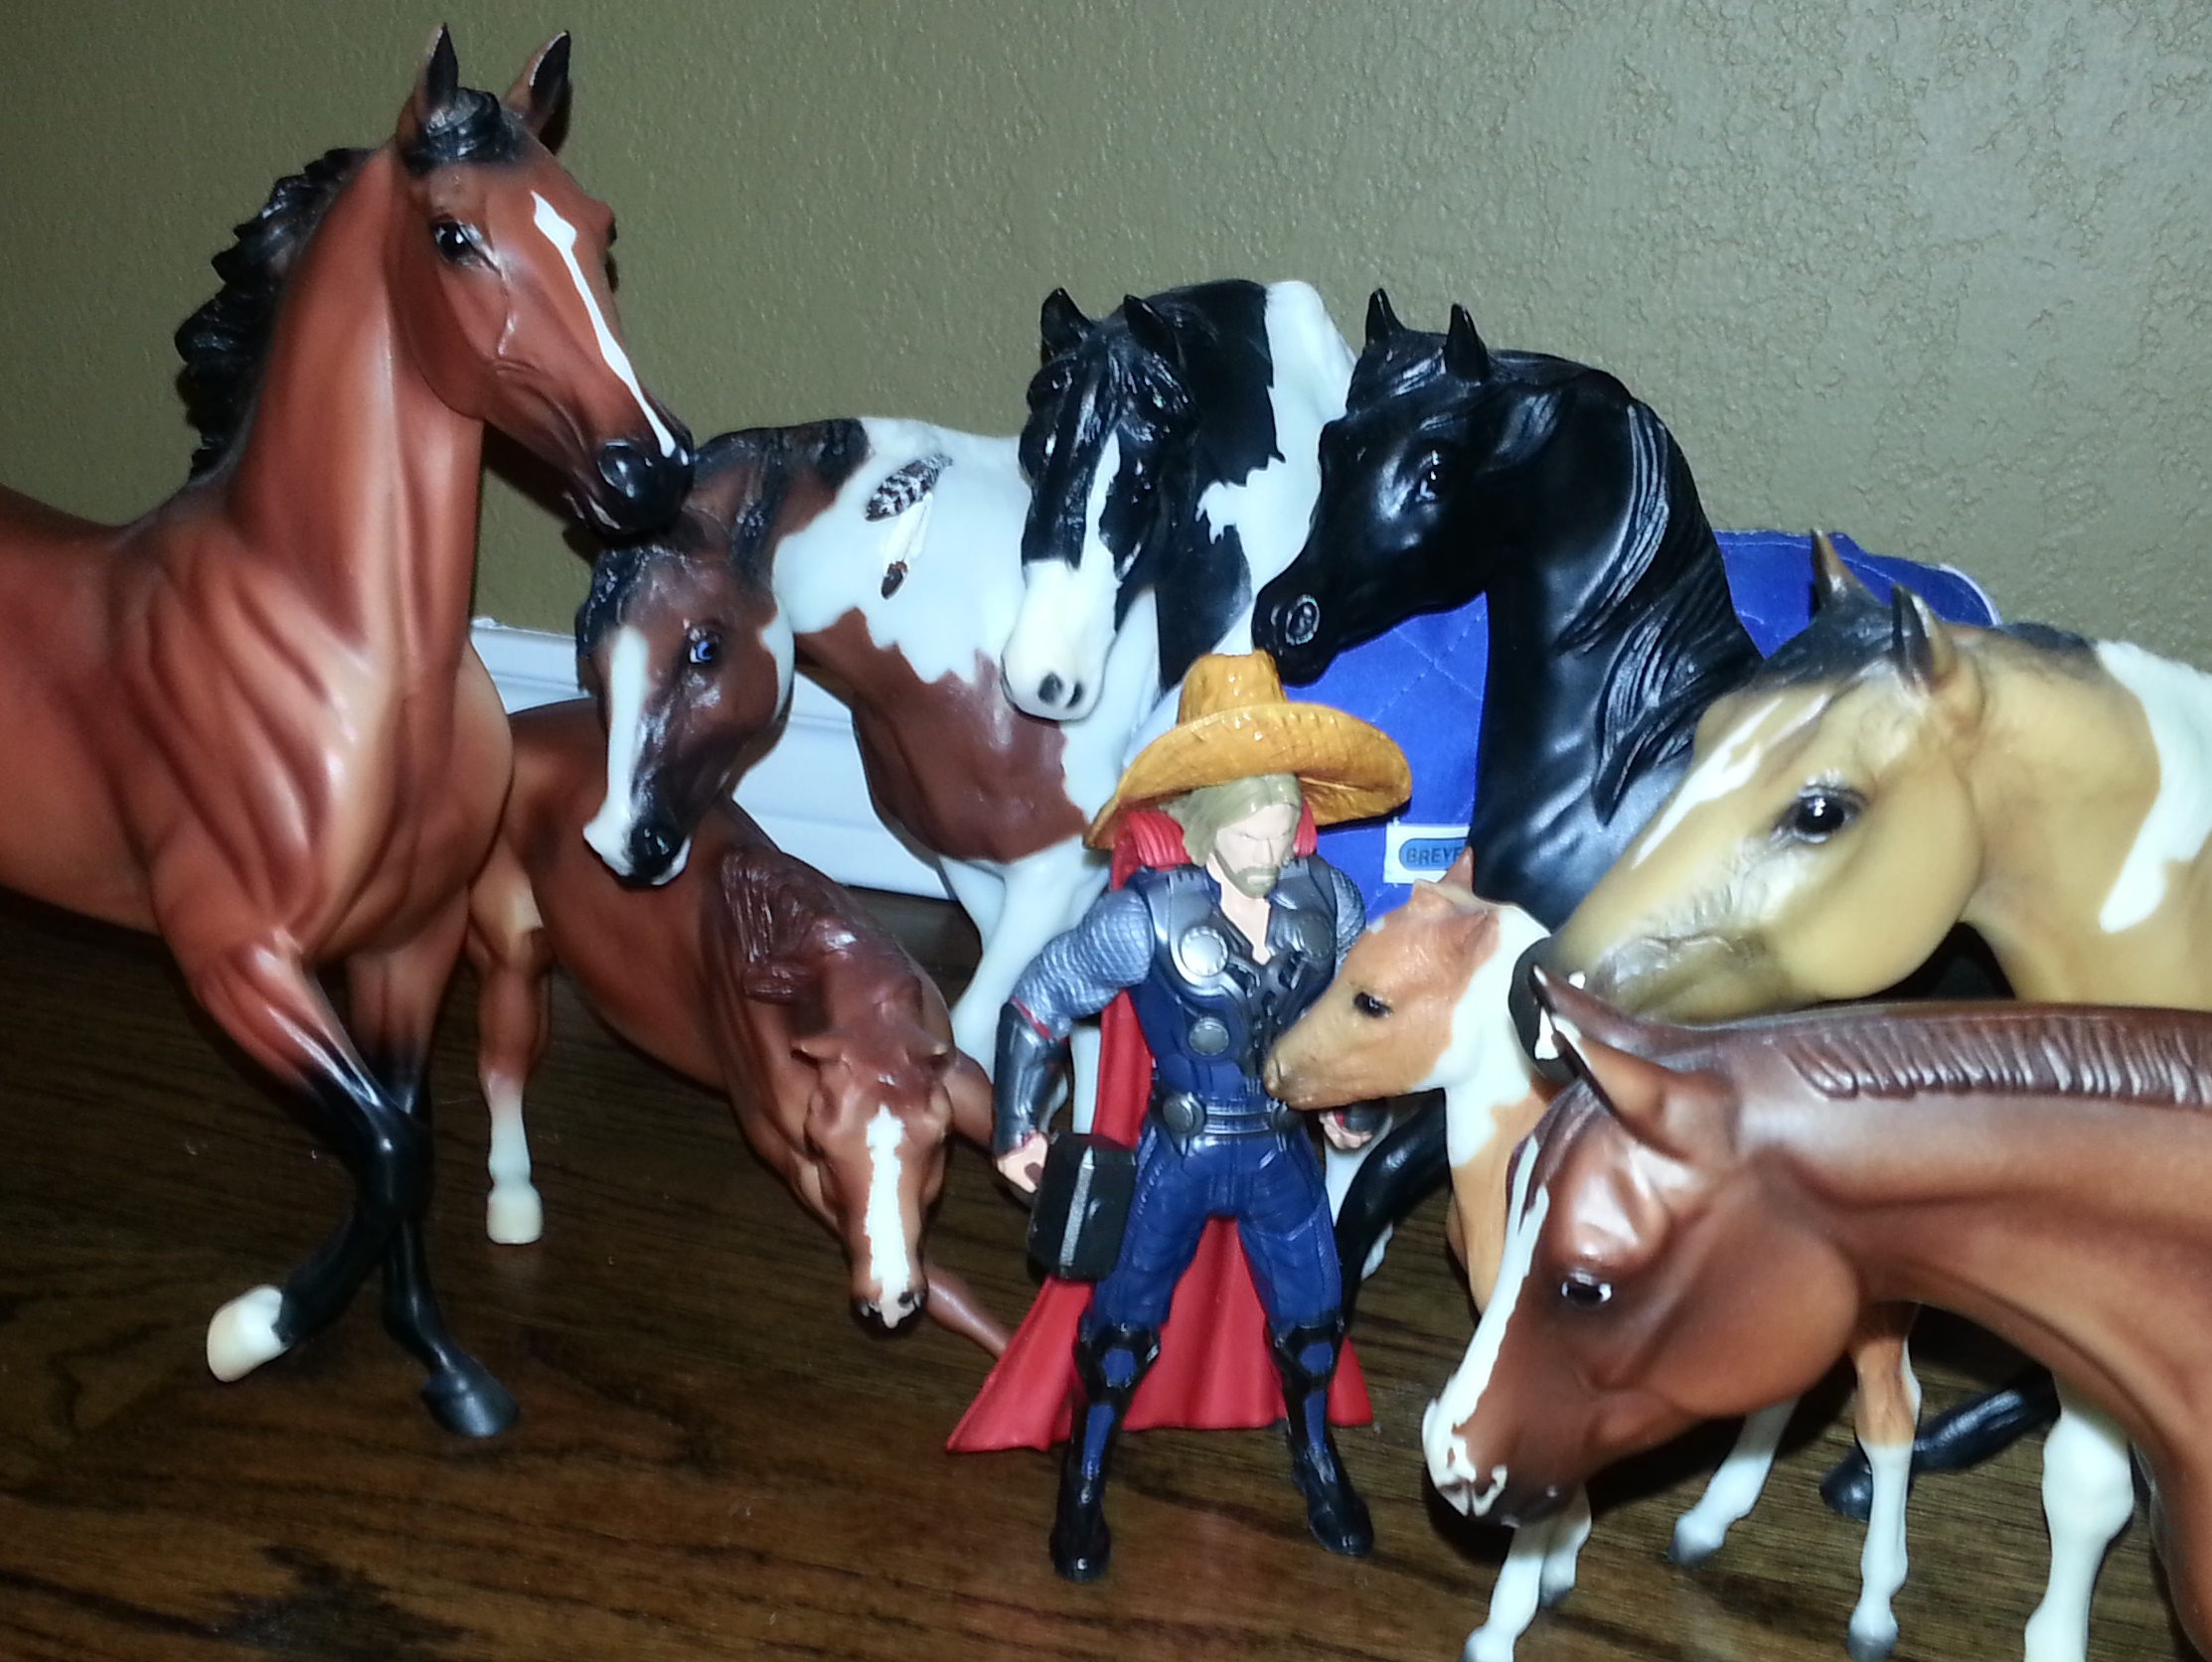 Thor thought it might be nice to have one of these lovely steeds go home with him.